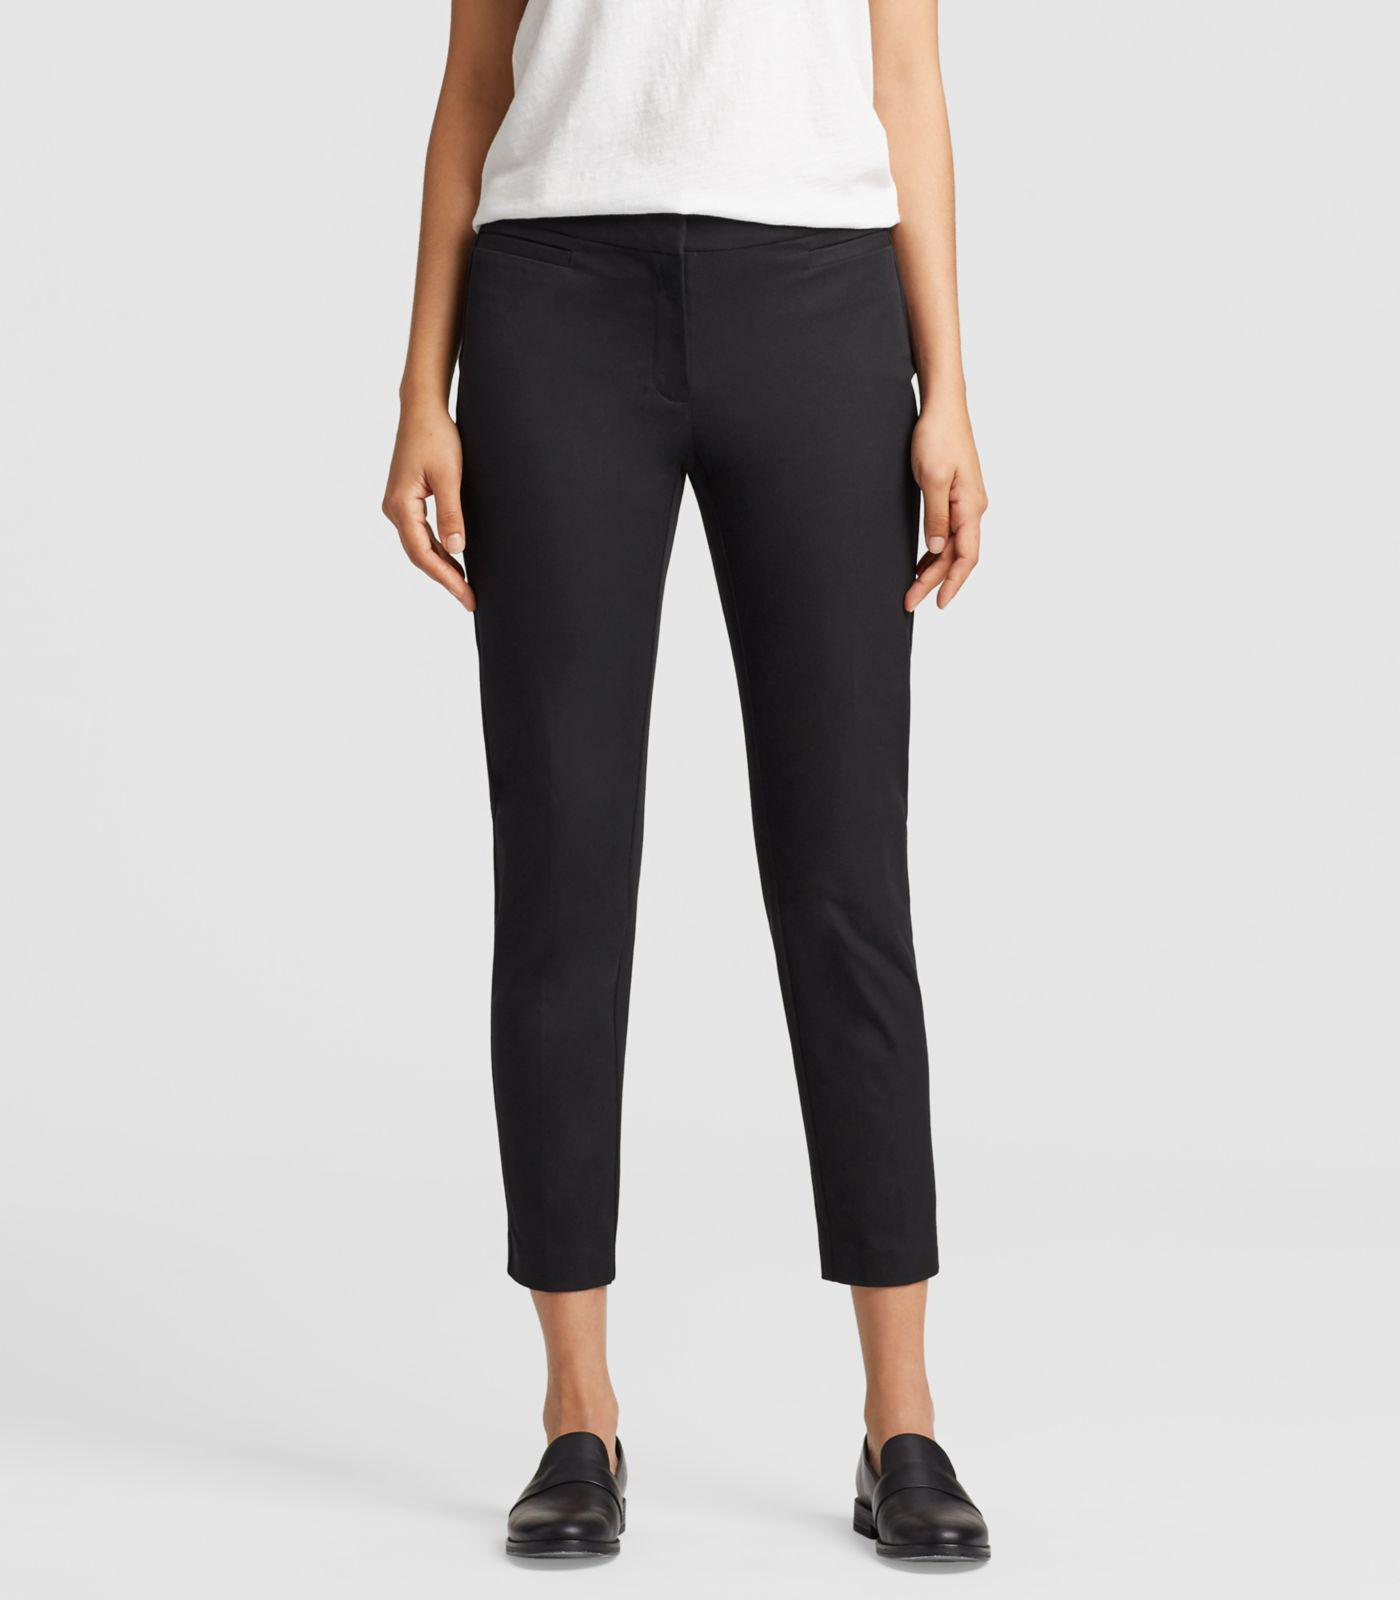 1d74ee6872 Eileen Fisher - Black Organic Cotton Stretch Twill Slim Ankle Pant With  Side Zip - Lyst. View fullscreen